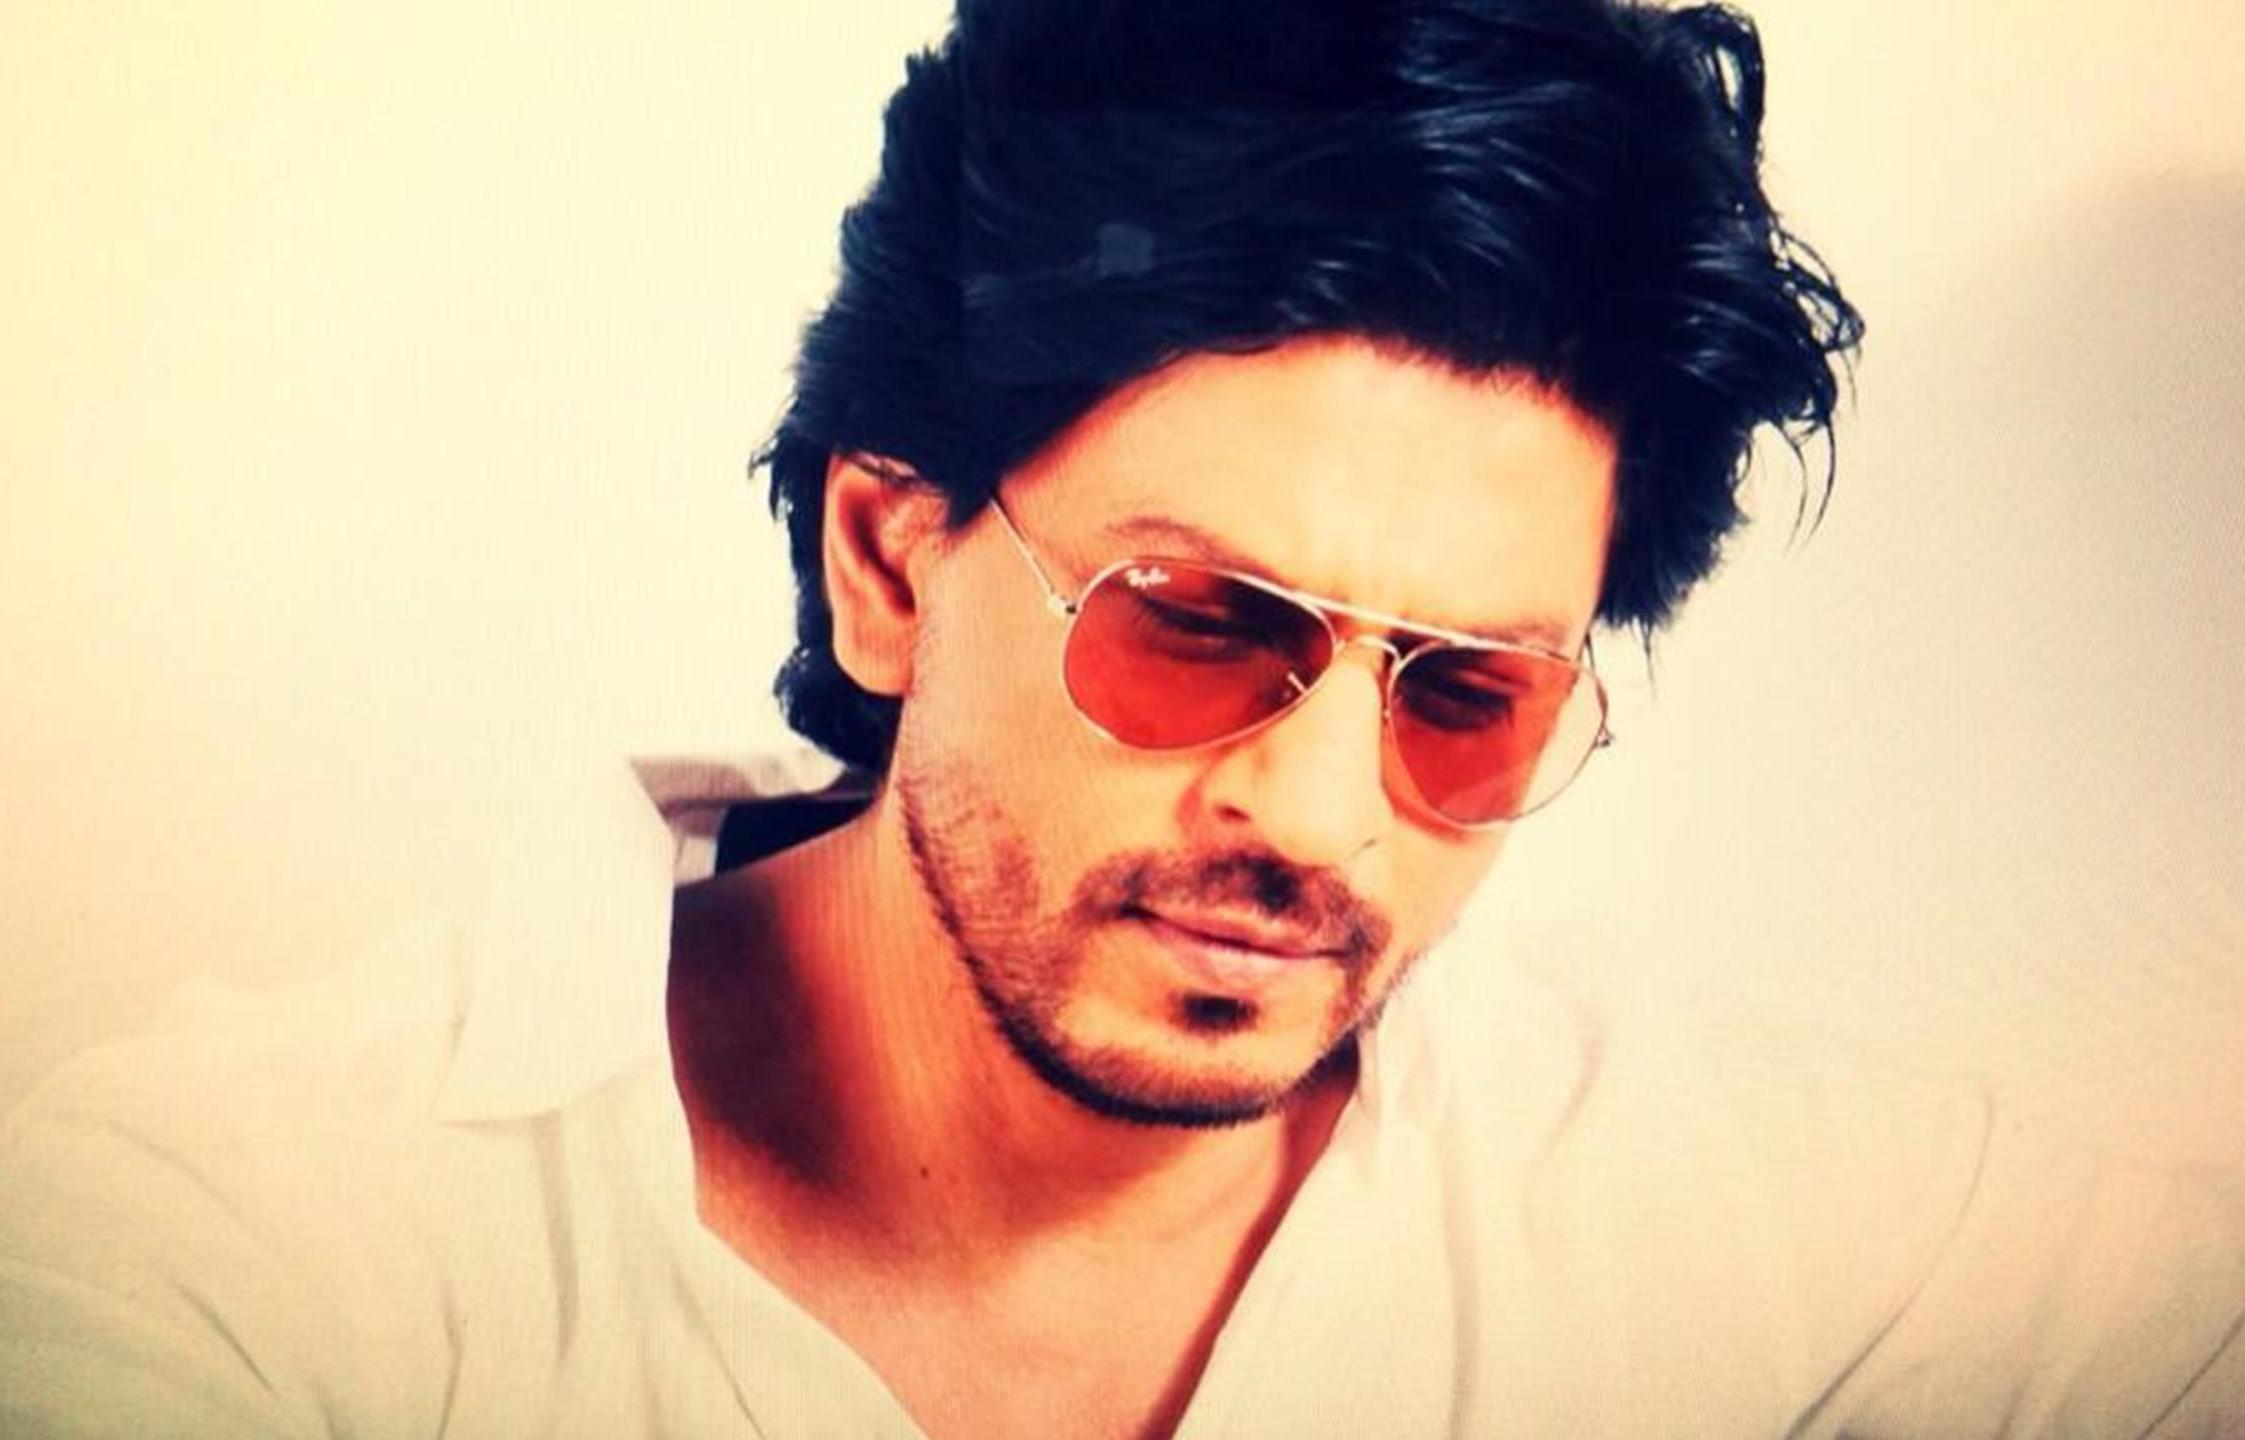 shah rukh khan hd desktop wallpapers | 7wallpapers